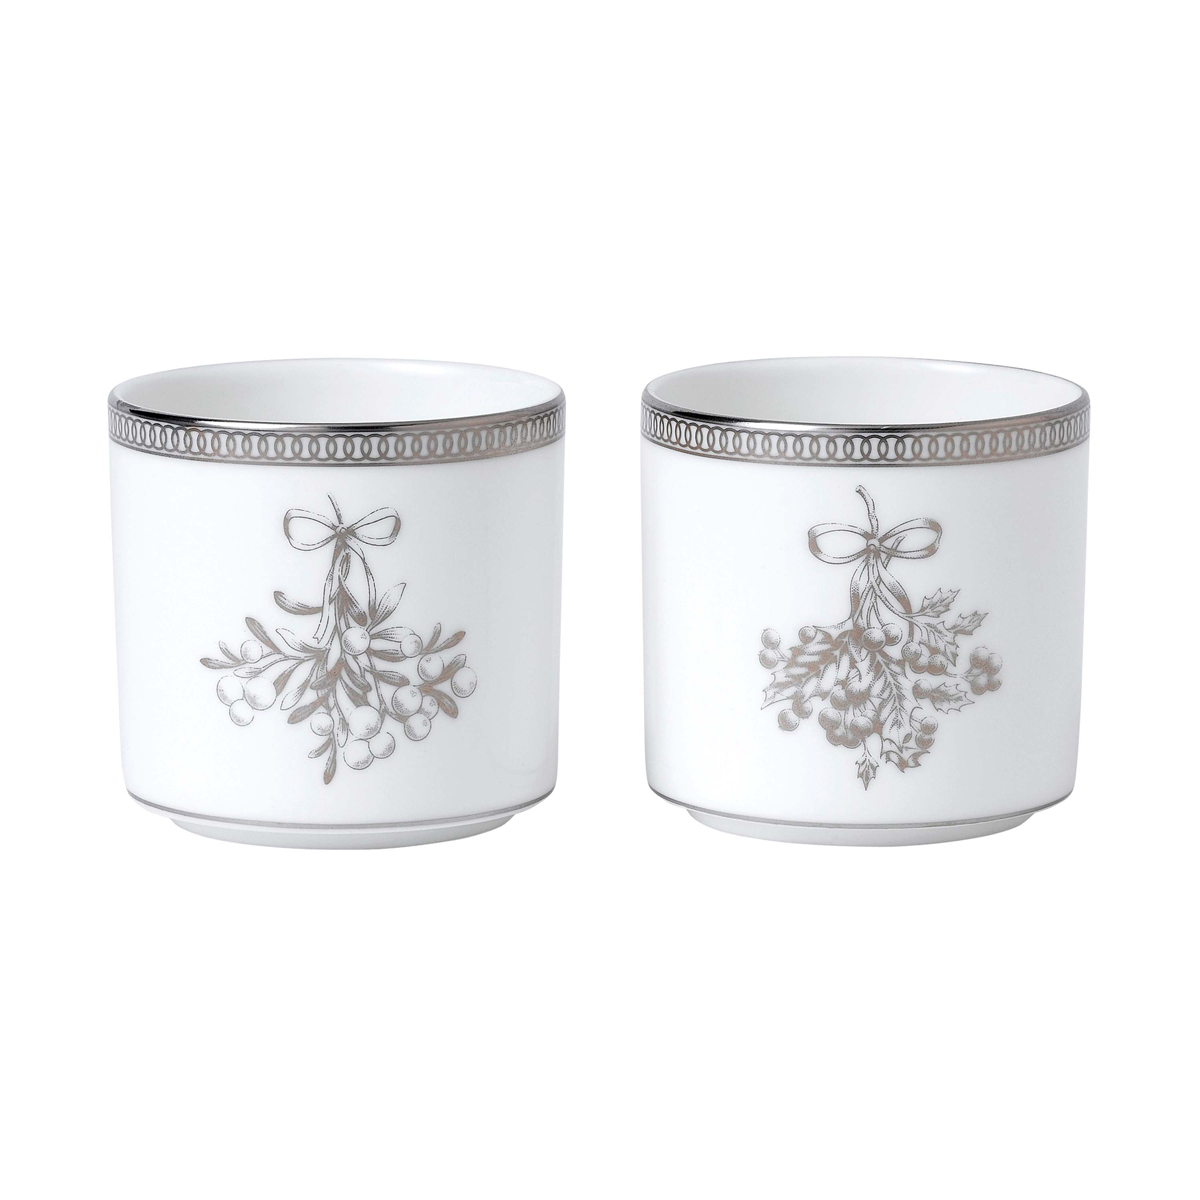 Wedgwood 2021 Winter White Votives, Pair